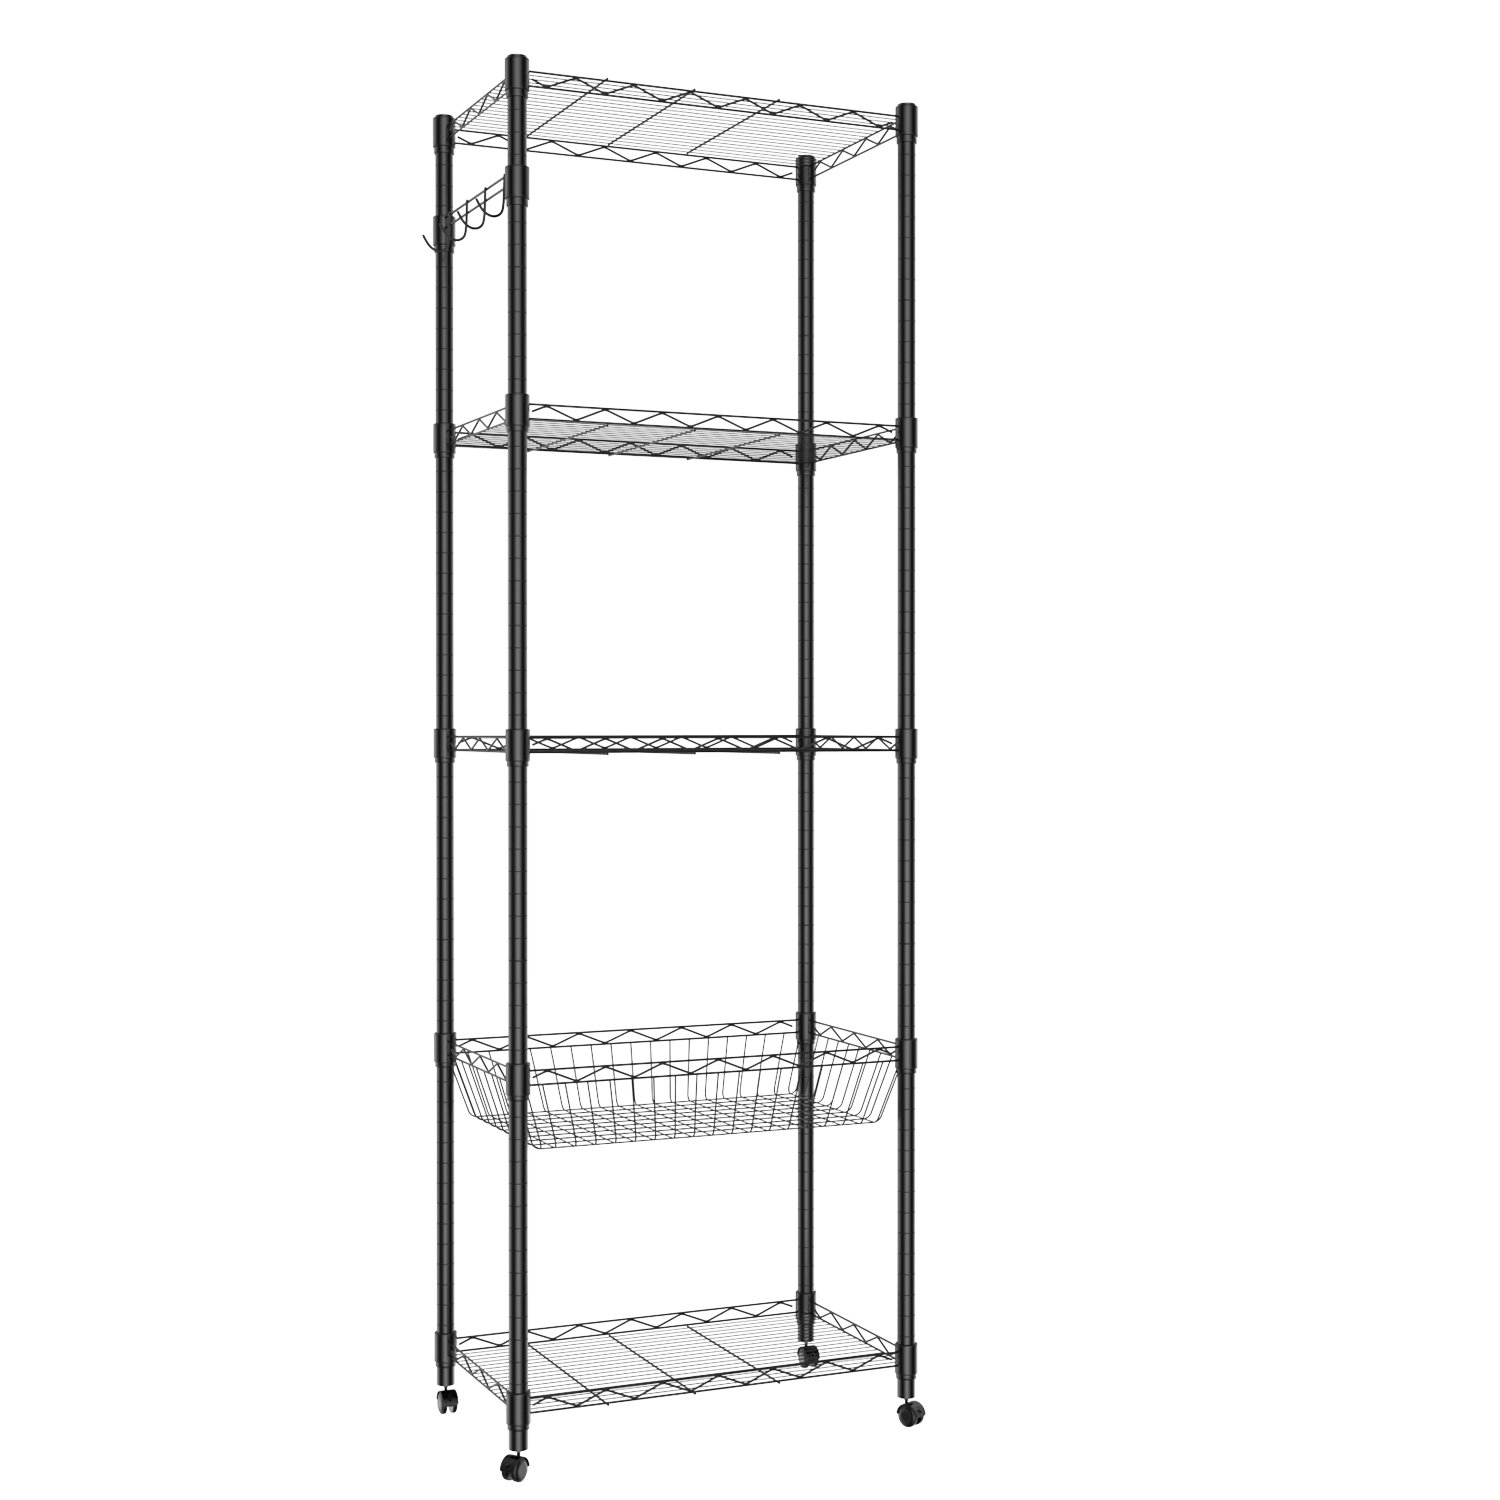 5 Tier Steel Wire Shelving with Wheels, Shelving Storage Organizer Rack for Kitchen Bathroom Balcony Living Room 71inch - Black [US STOCK] by ferty (Image #1)